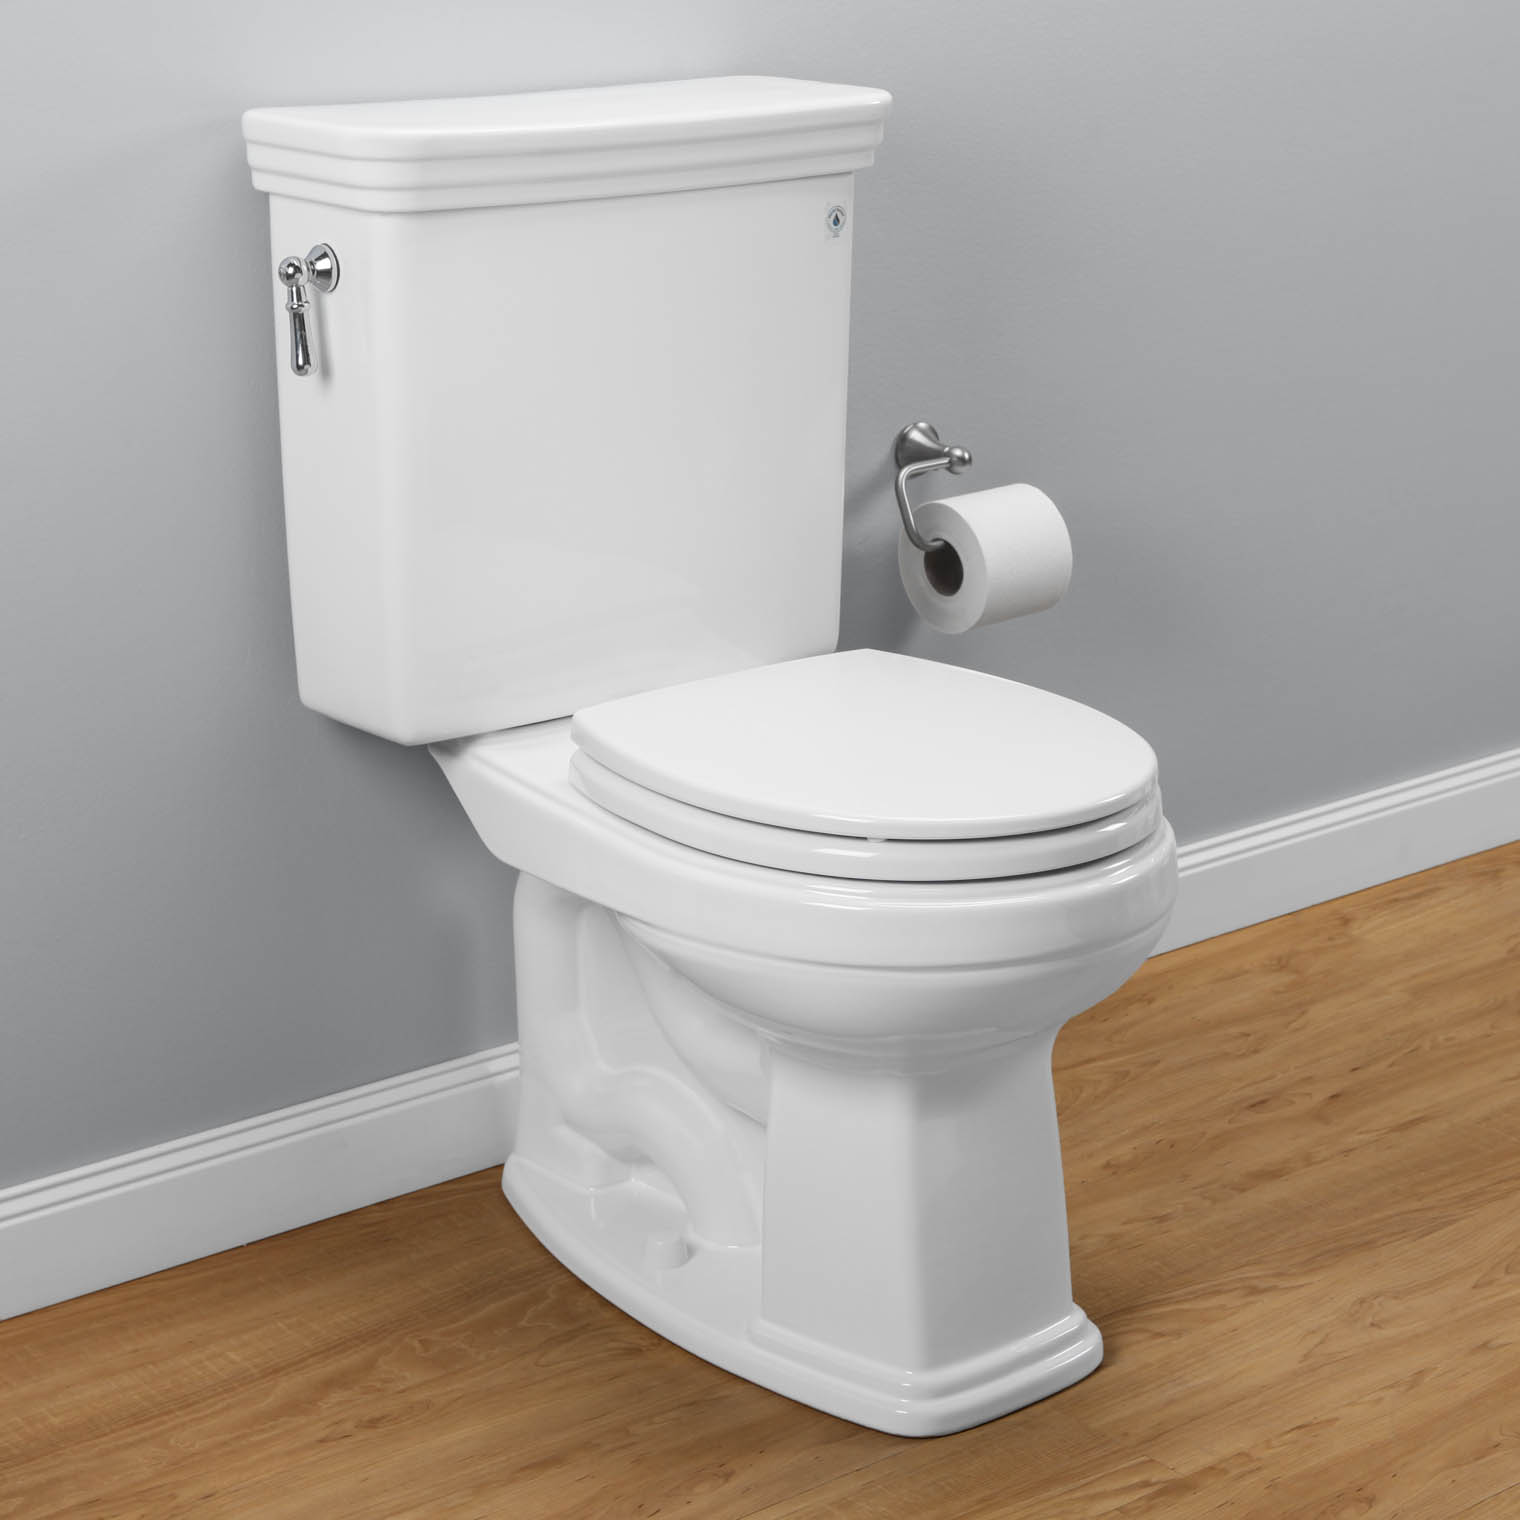 Toto Toilets CST423EFG 01 Eco Promenade Round On Wooden Floor Matched With Grey Wall Plus Rolled Tissue For Toilet Decor Ideas